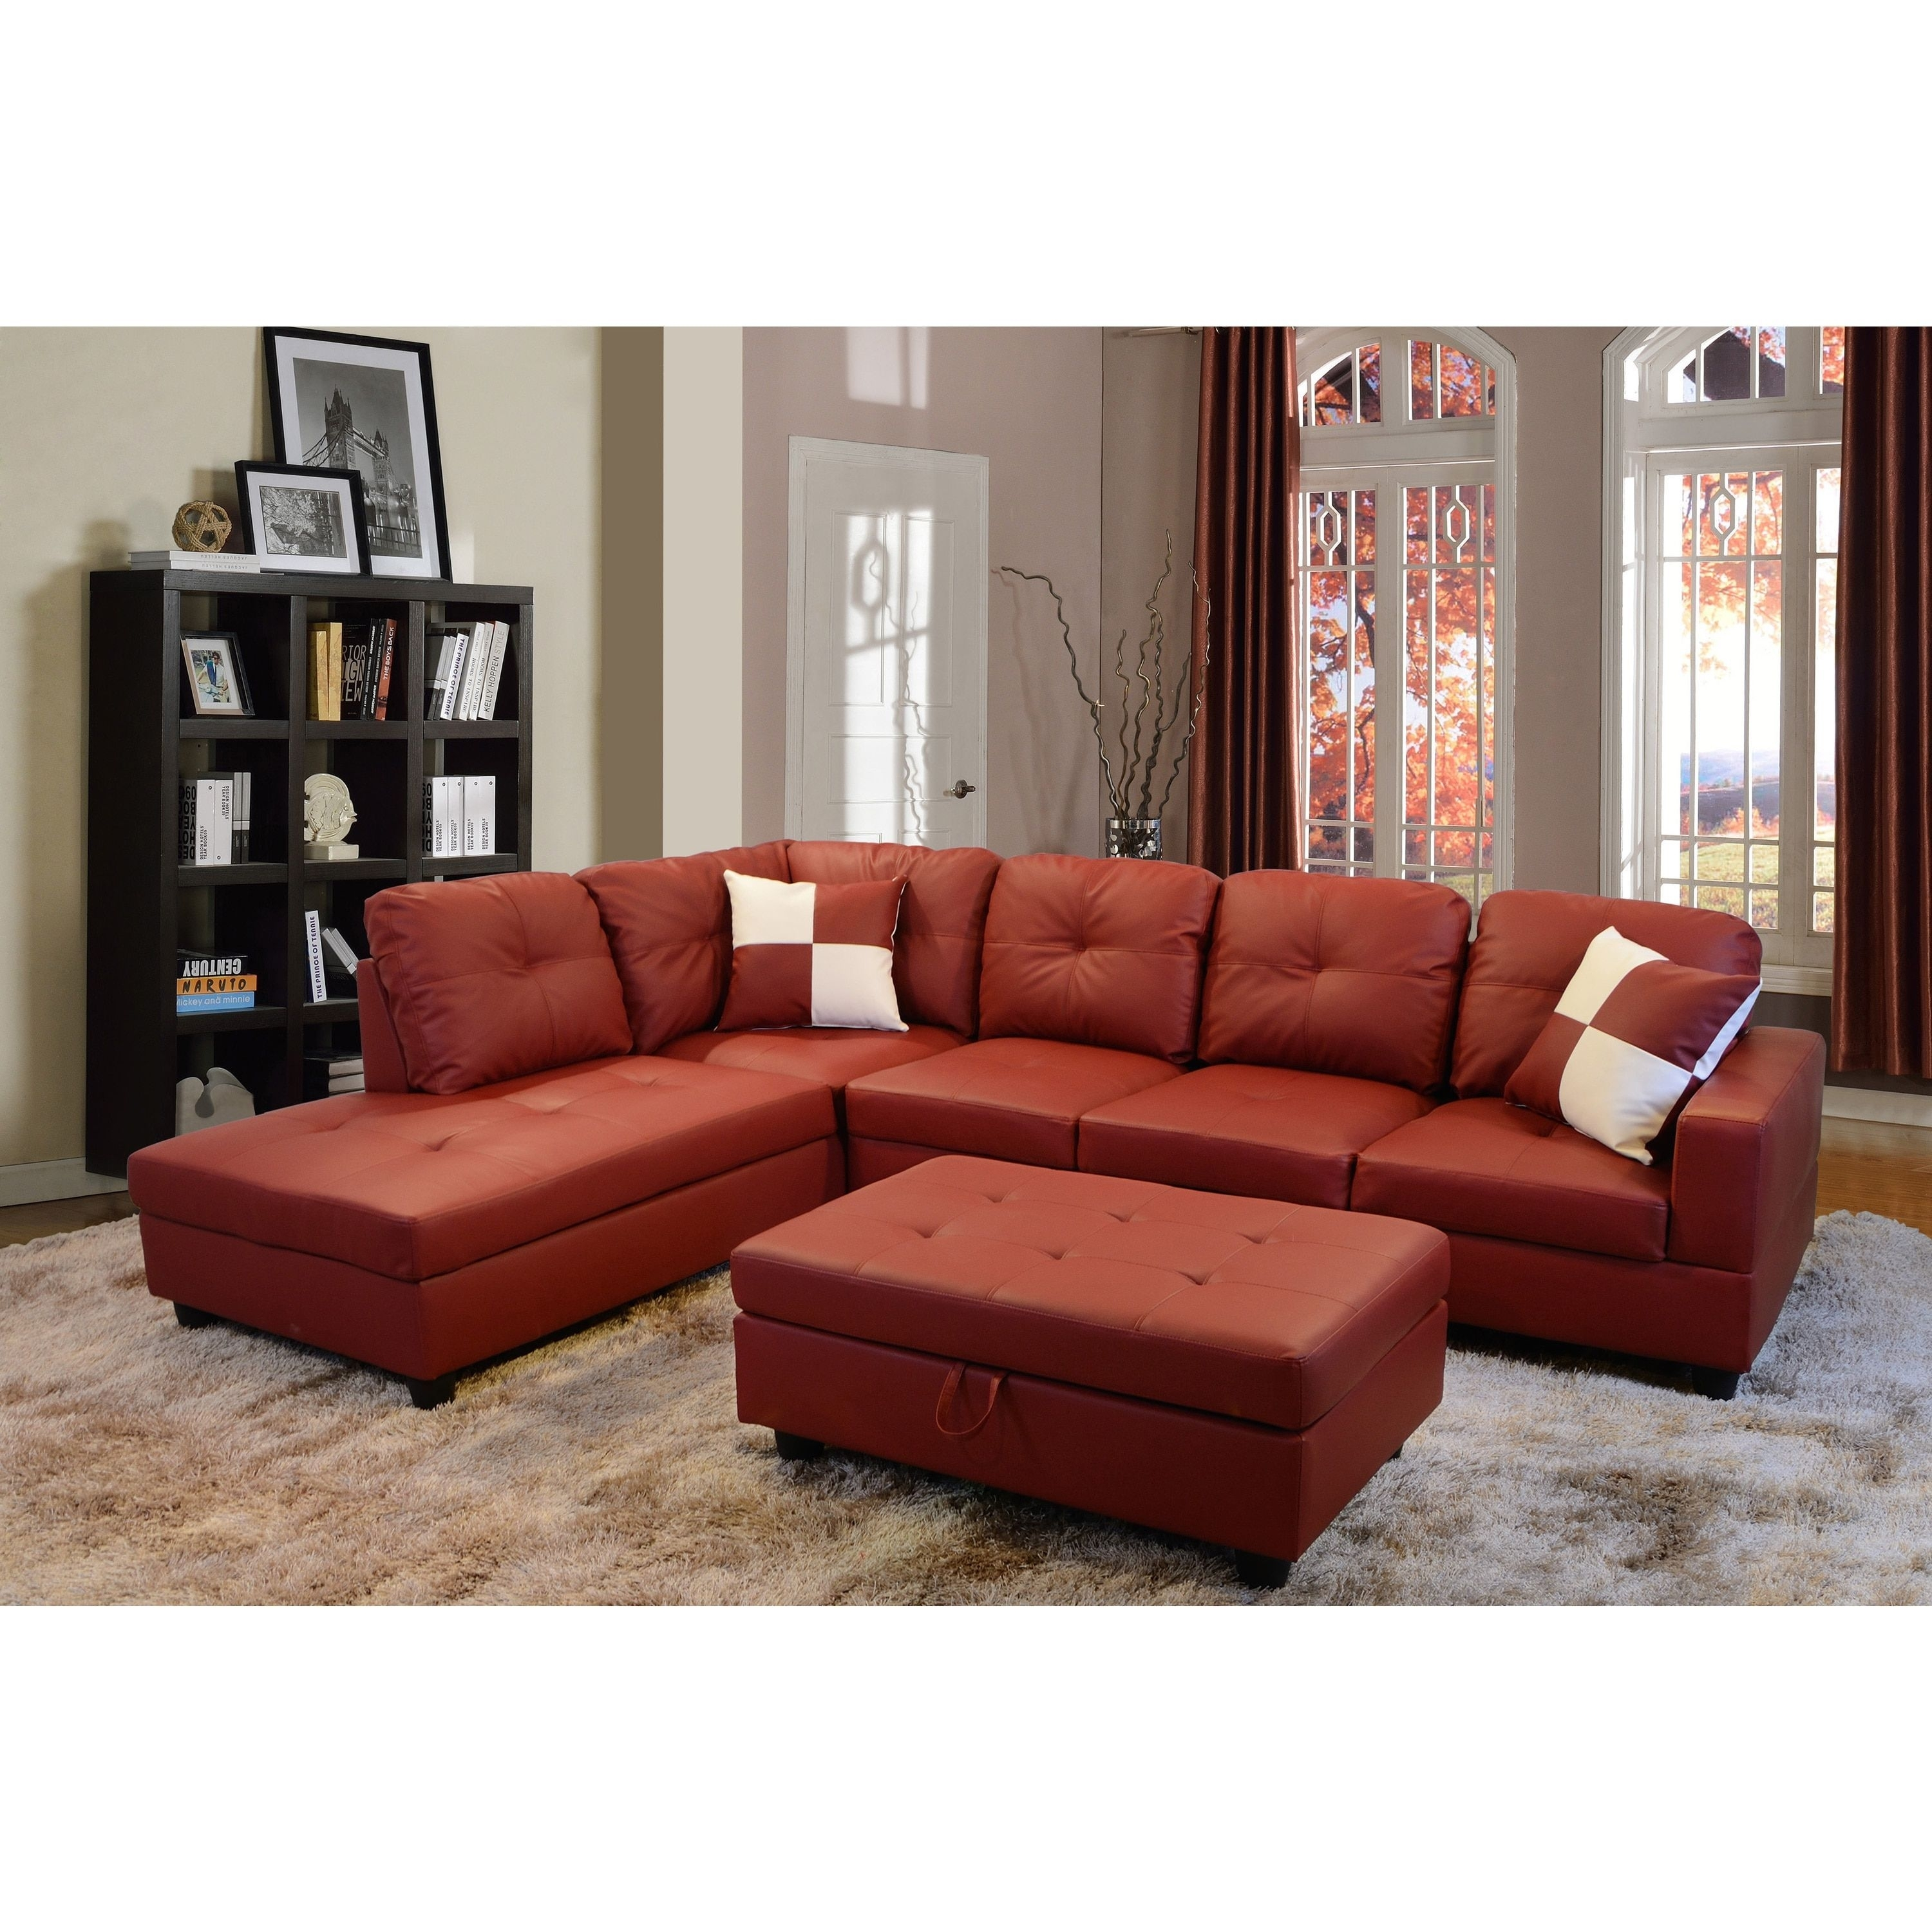 Delma 3 Piece Red Faux Leather Furniture Set (Delma 3 Pc Faux Throughout Tenny Dark Grey 2 Piece Right Facing Chaise Sectionals With 2 Headrest (Image 10 of 25)